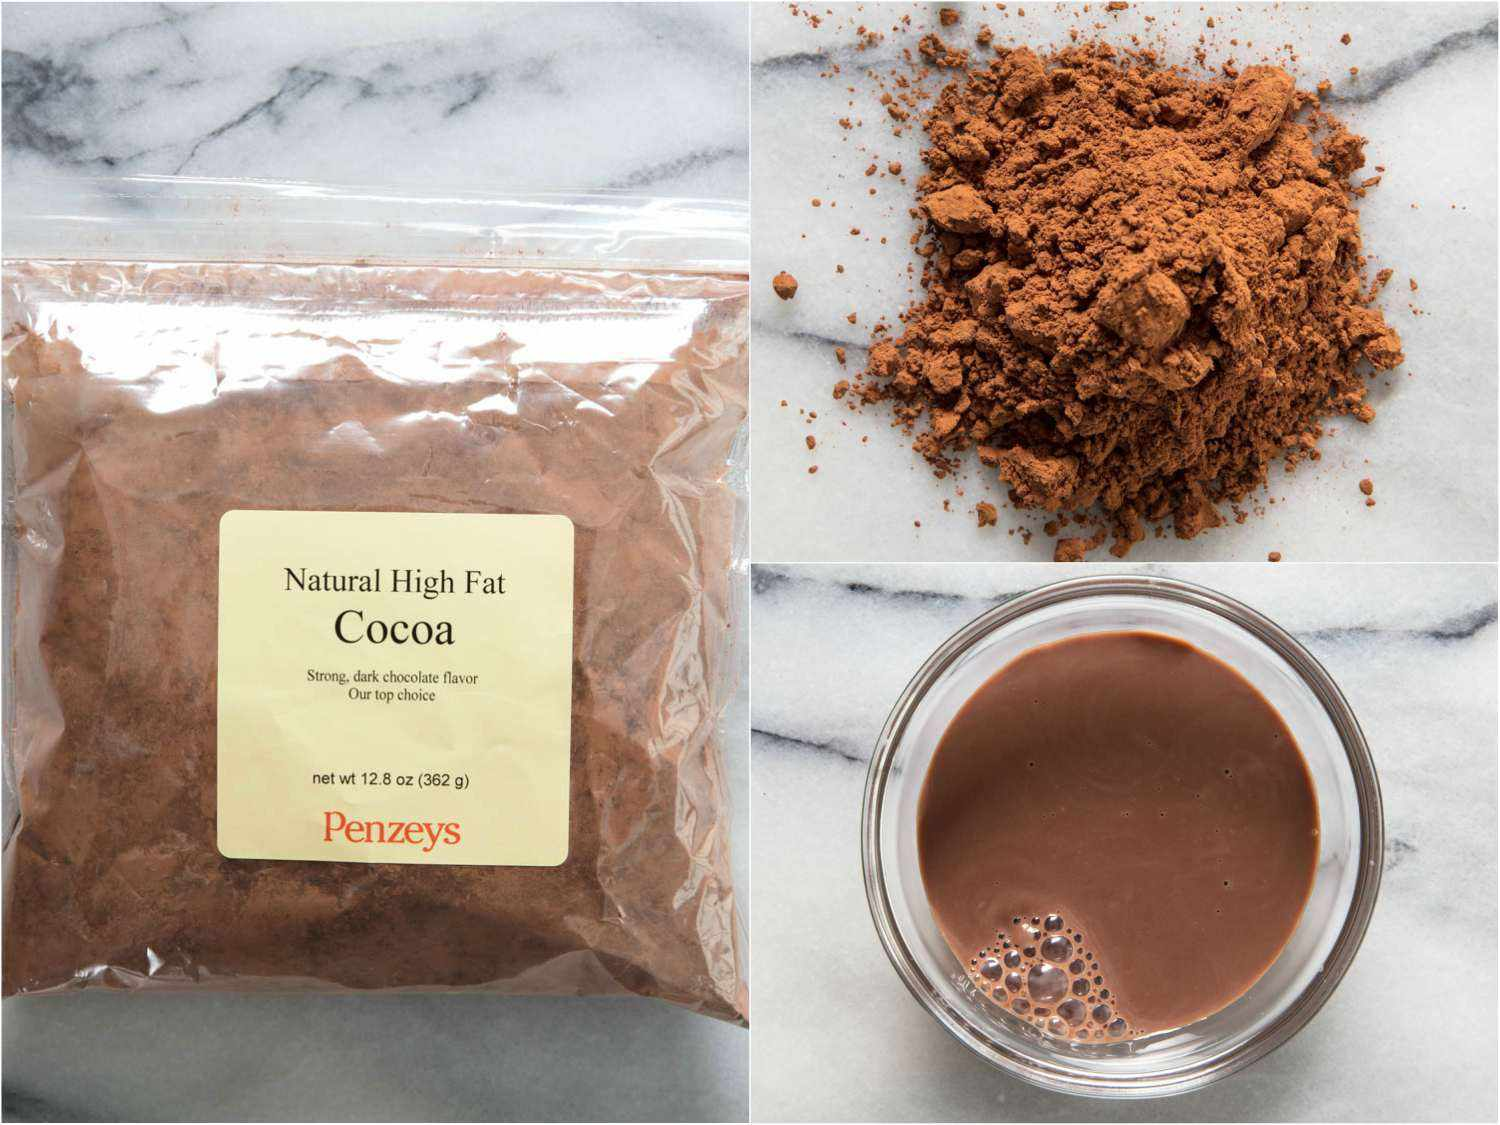 Collage of Penzeys cocoa powder, by itself, in hot cocoa, and in the packaging